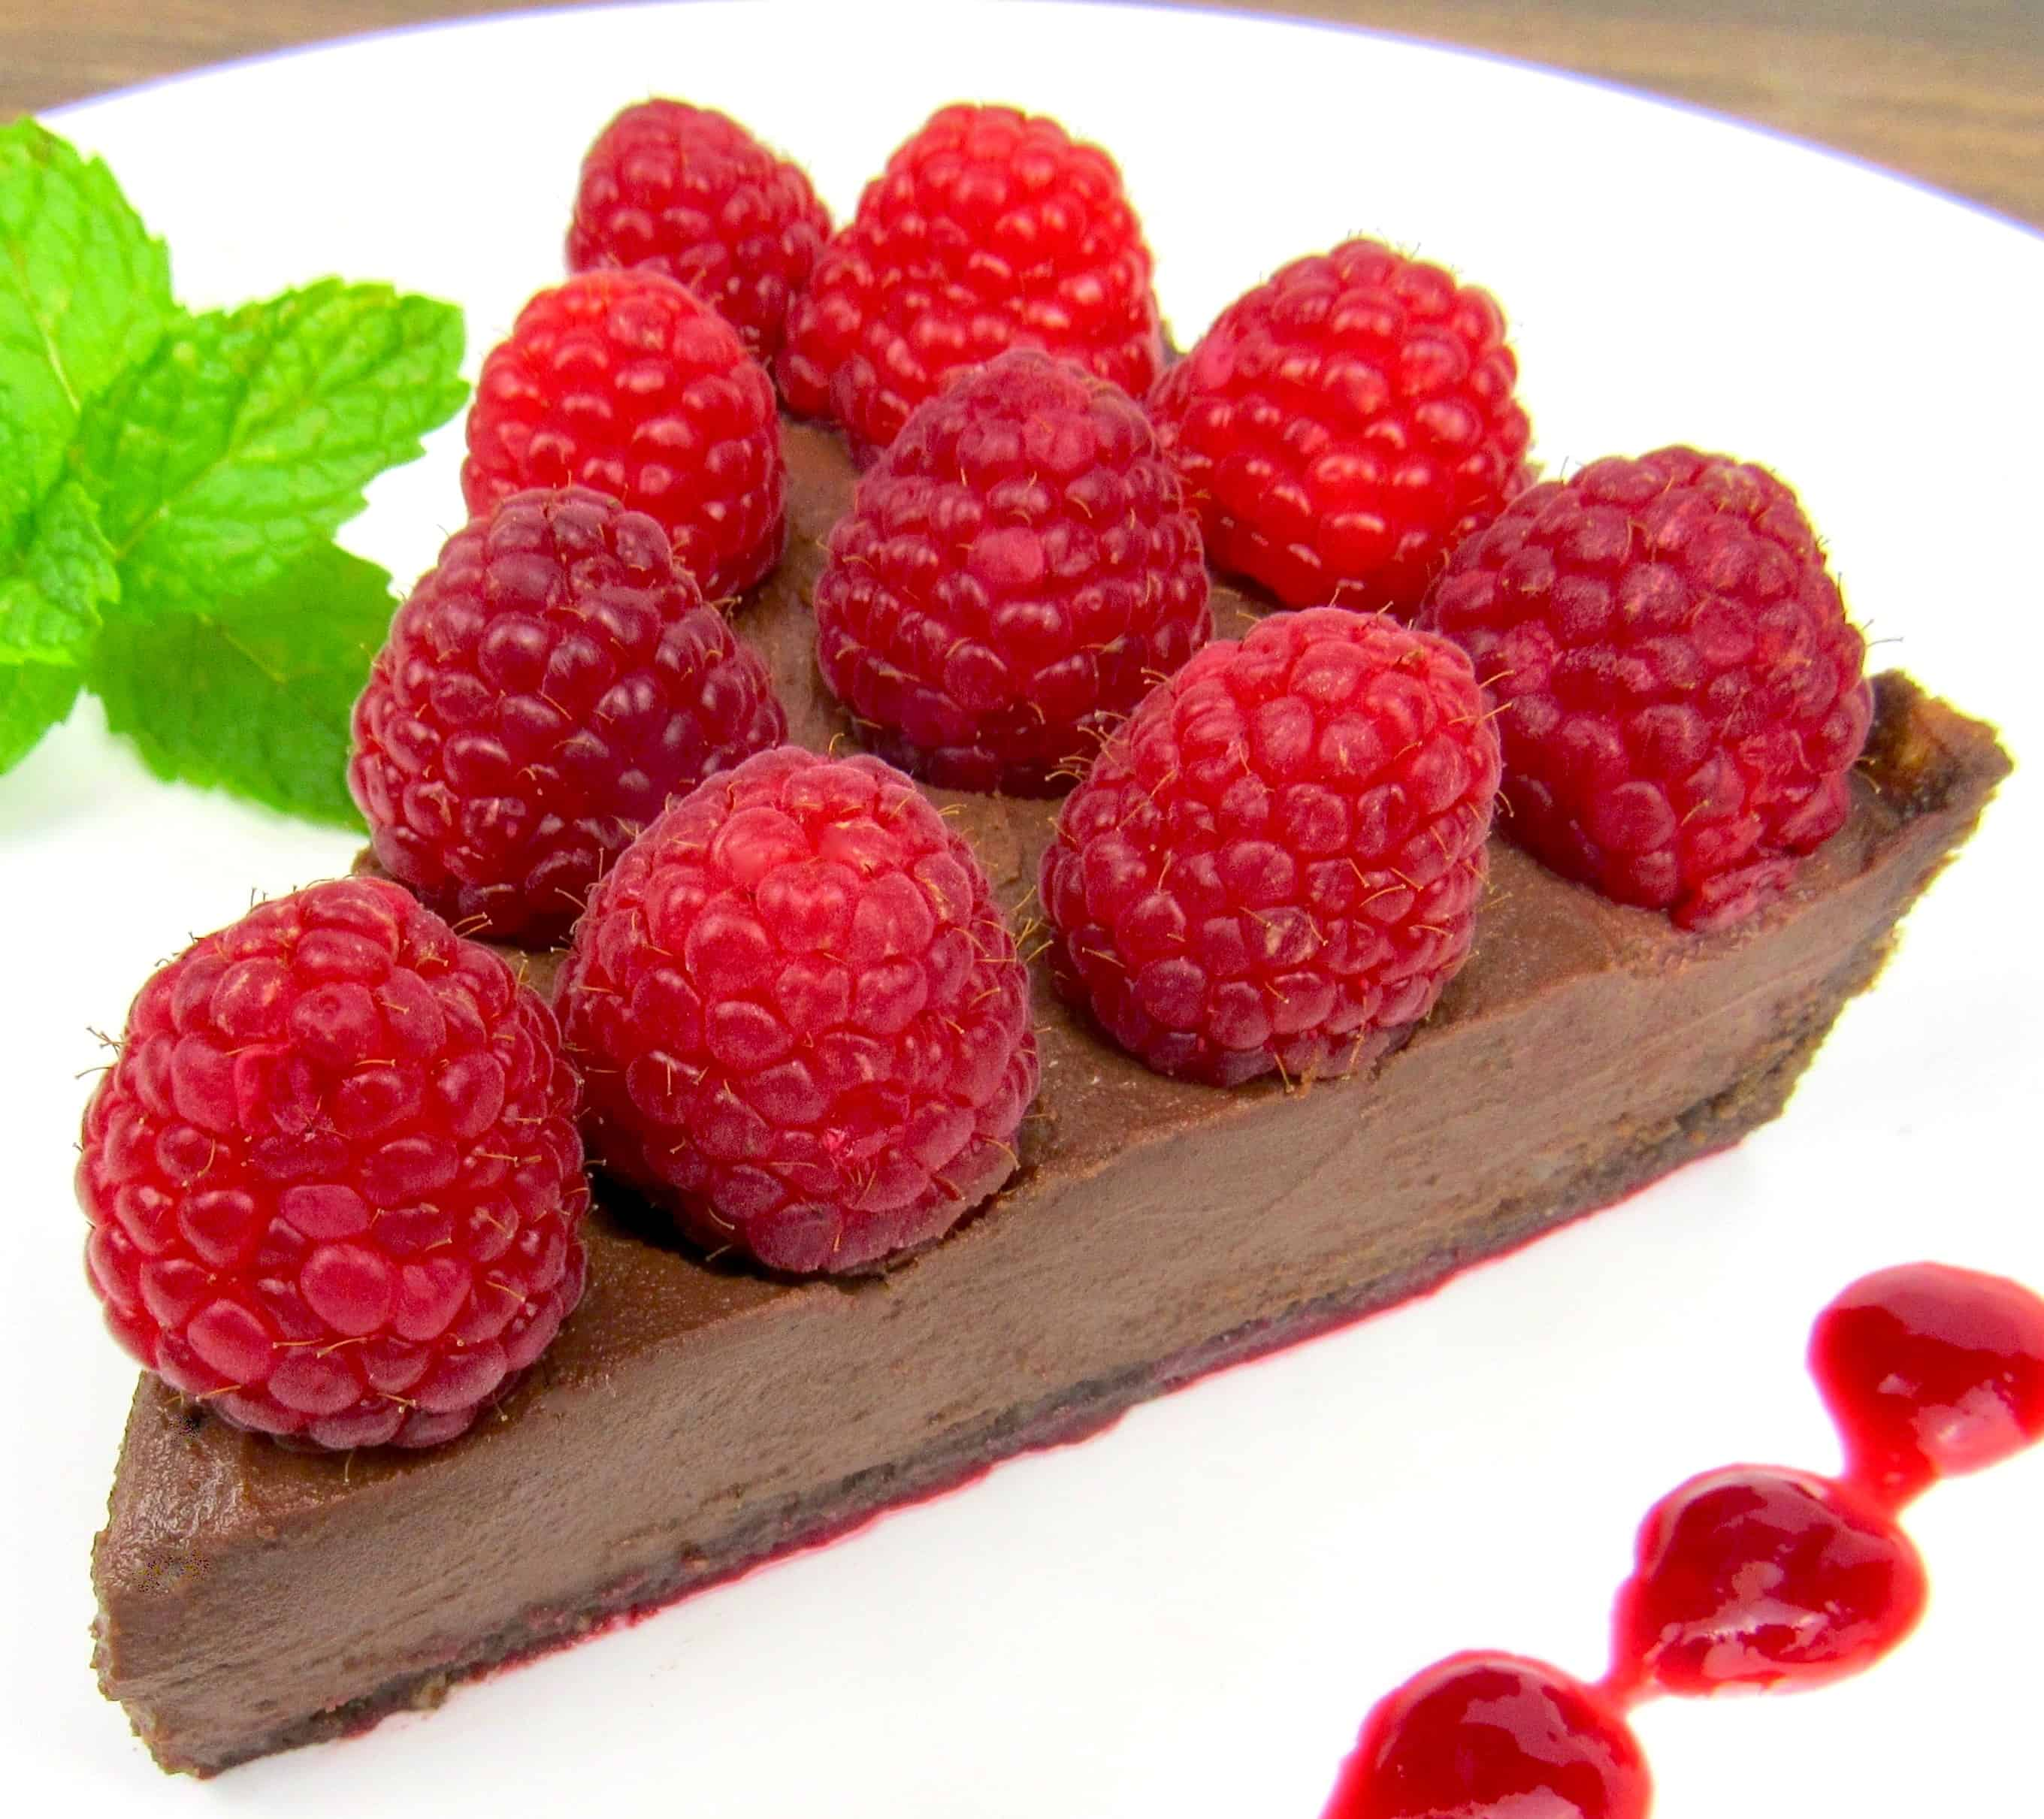 slice of chocolate tart with raspberries on top